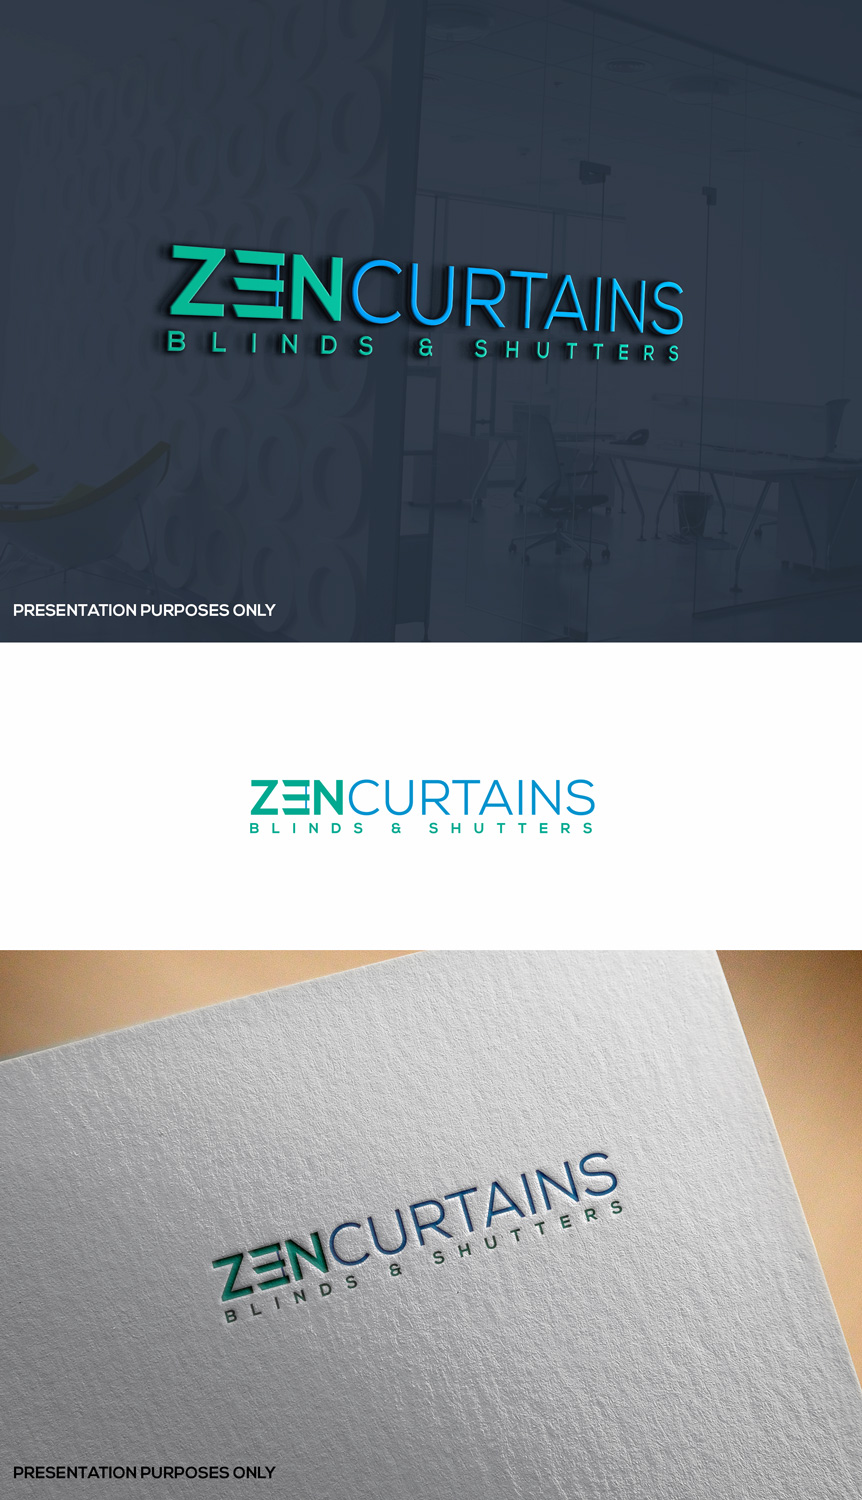 Logo Design by siri_graphix for Zen Curtains & Blinds | Design #14412078